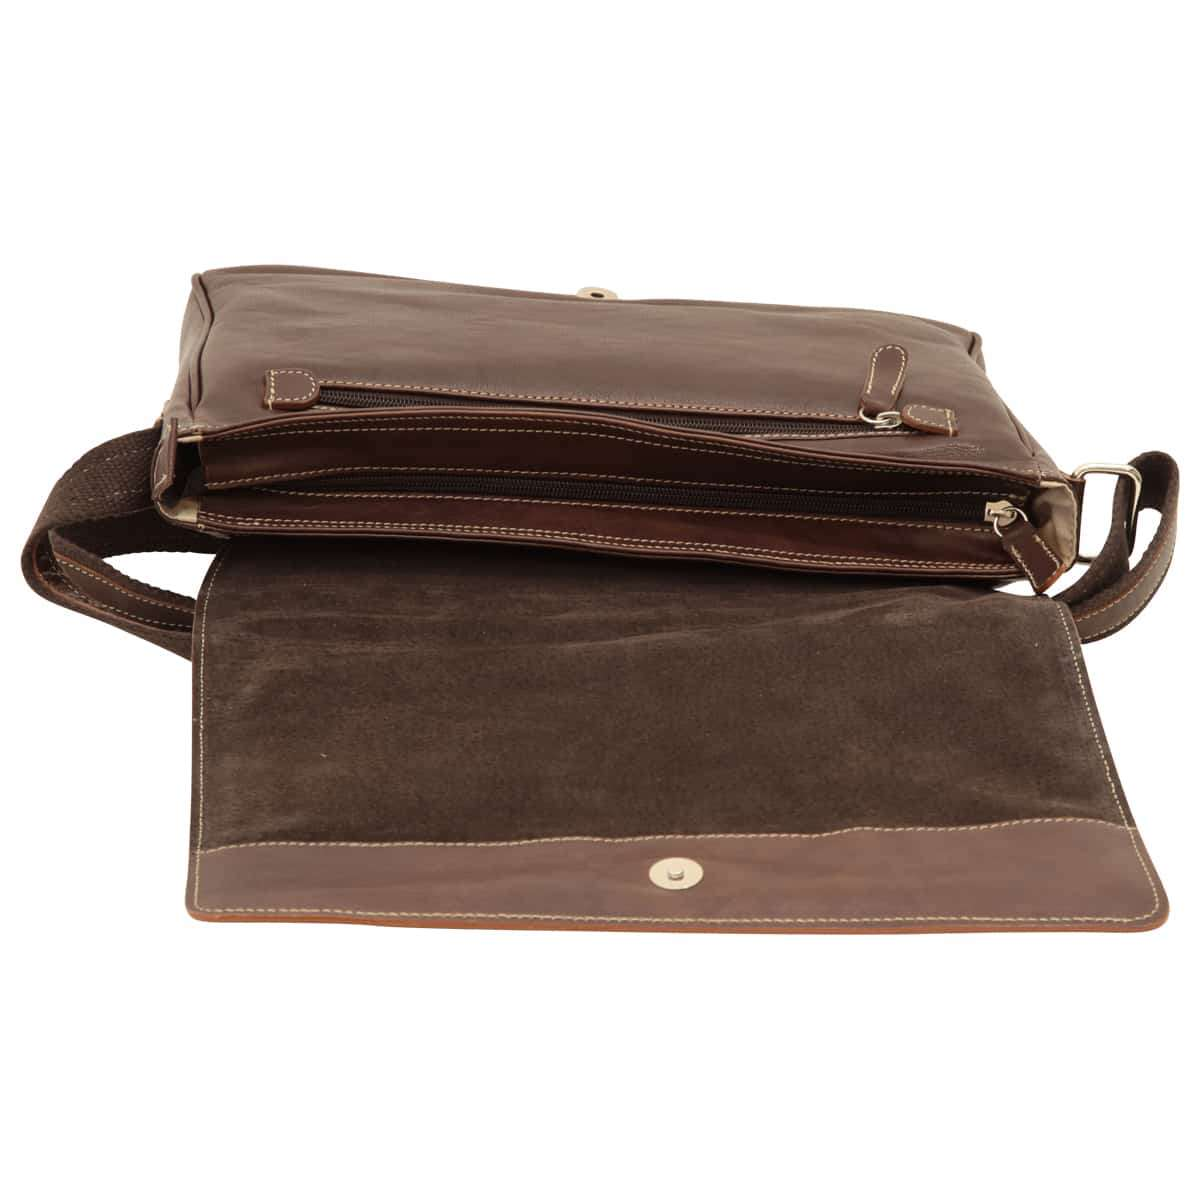 Oiled calfskin leather messenger with frontal zip closure - Dark Brown | 410561TM UK | Old Angler Firenze